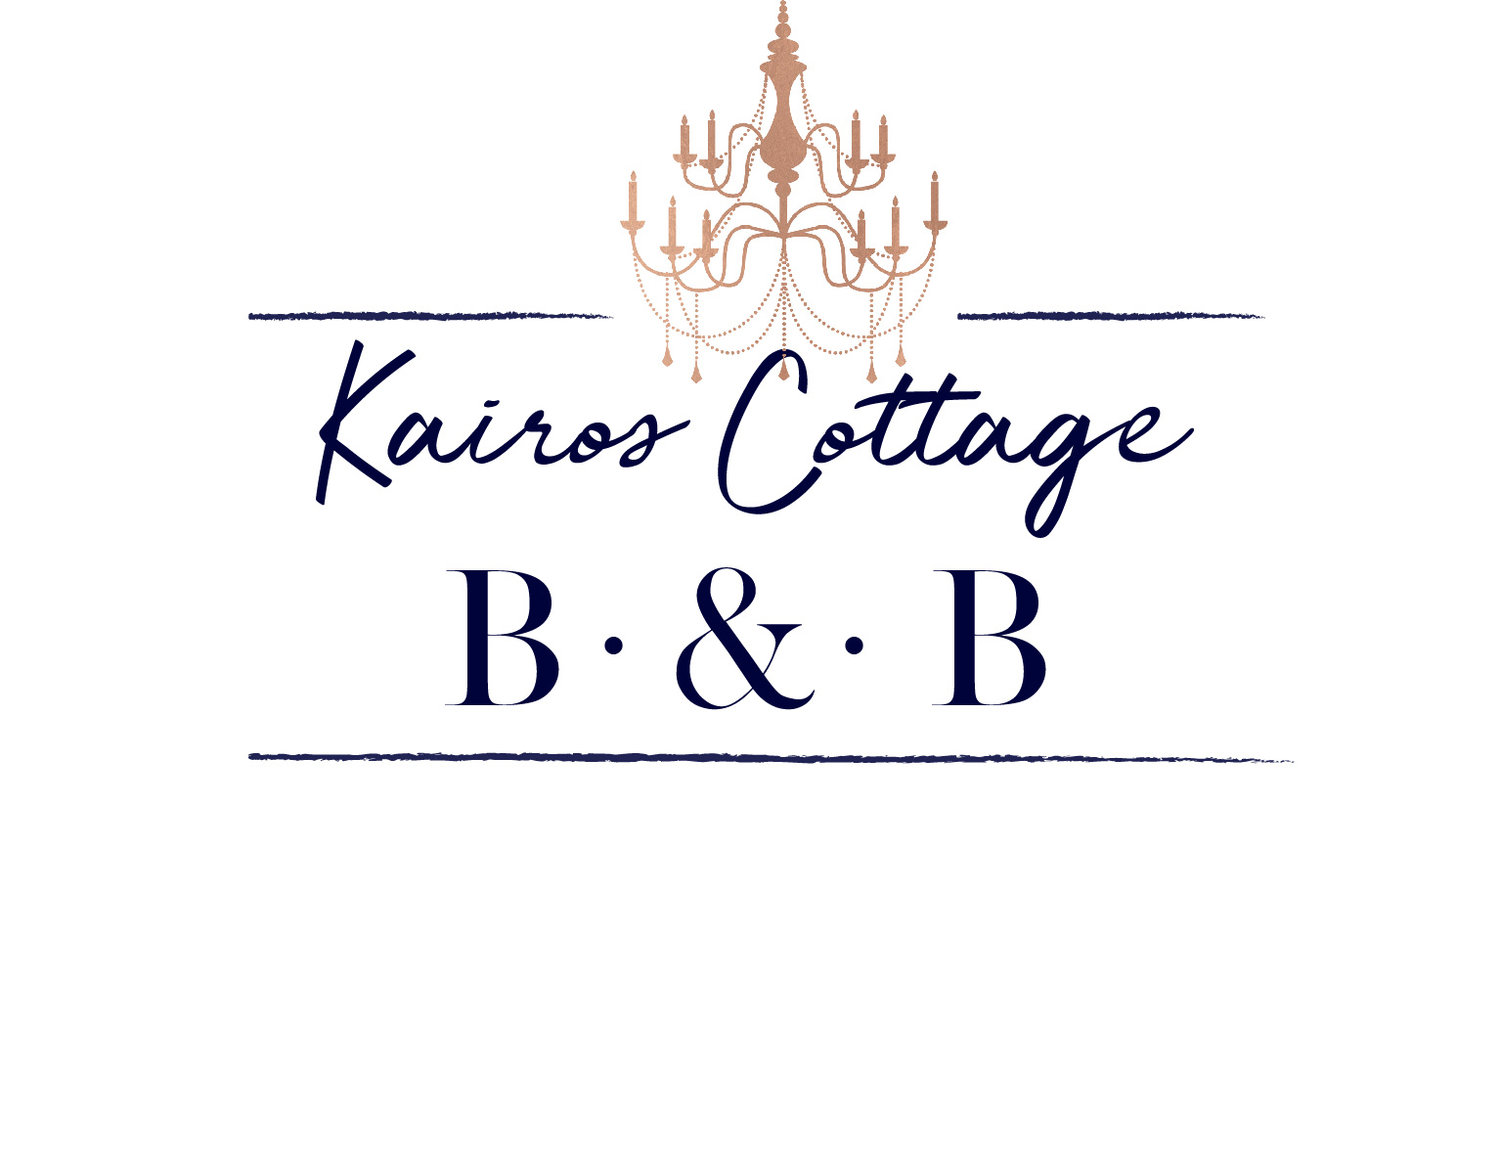 Kairos cottage B&B  in Ludertiz, Namibia